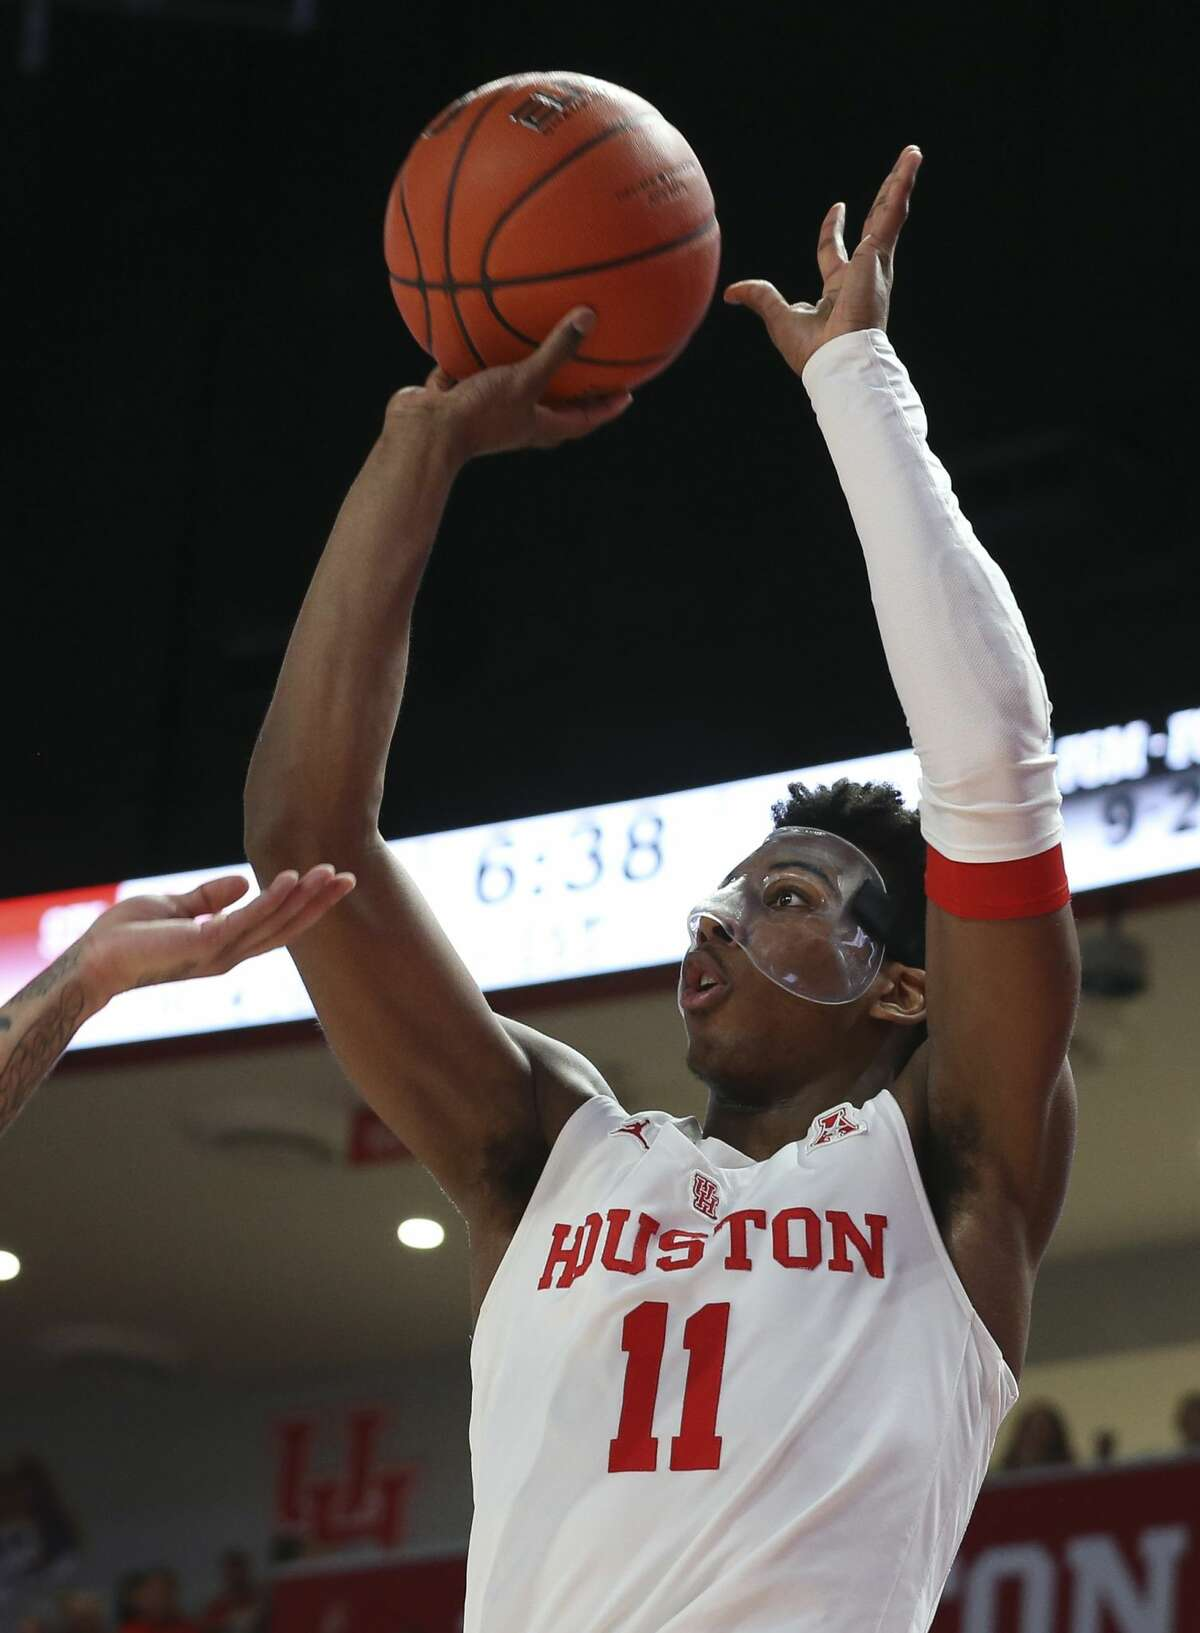 Houston Cougars guard Nate Hinton (11) aims for a three point basket during the first half of the American Athletic Conference game against the Cincinnati Bearcats at Fertitta Center on Sunday, Feb. 10, 2019, in Houston.